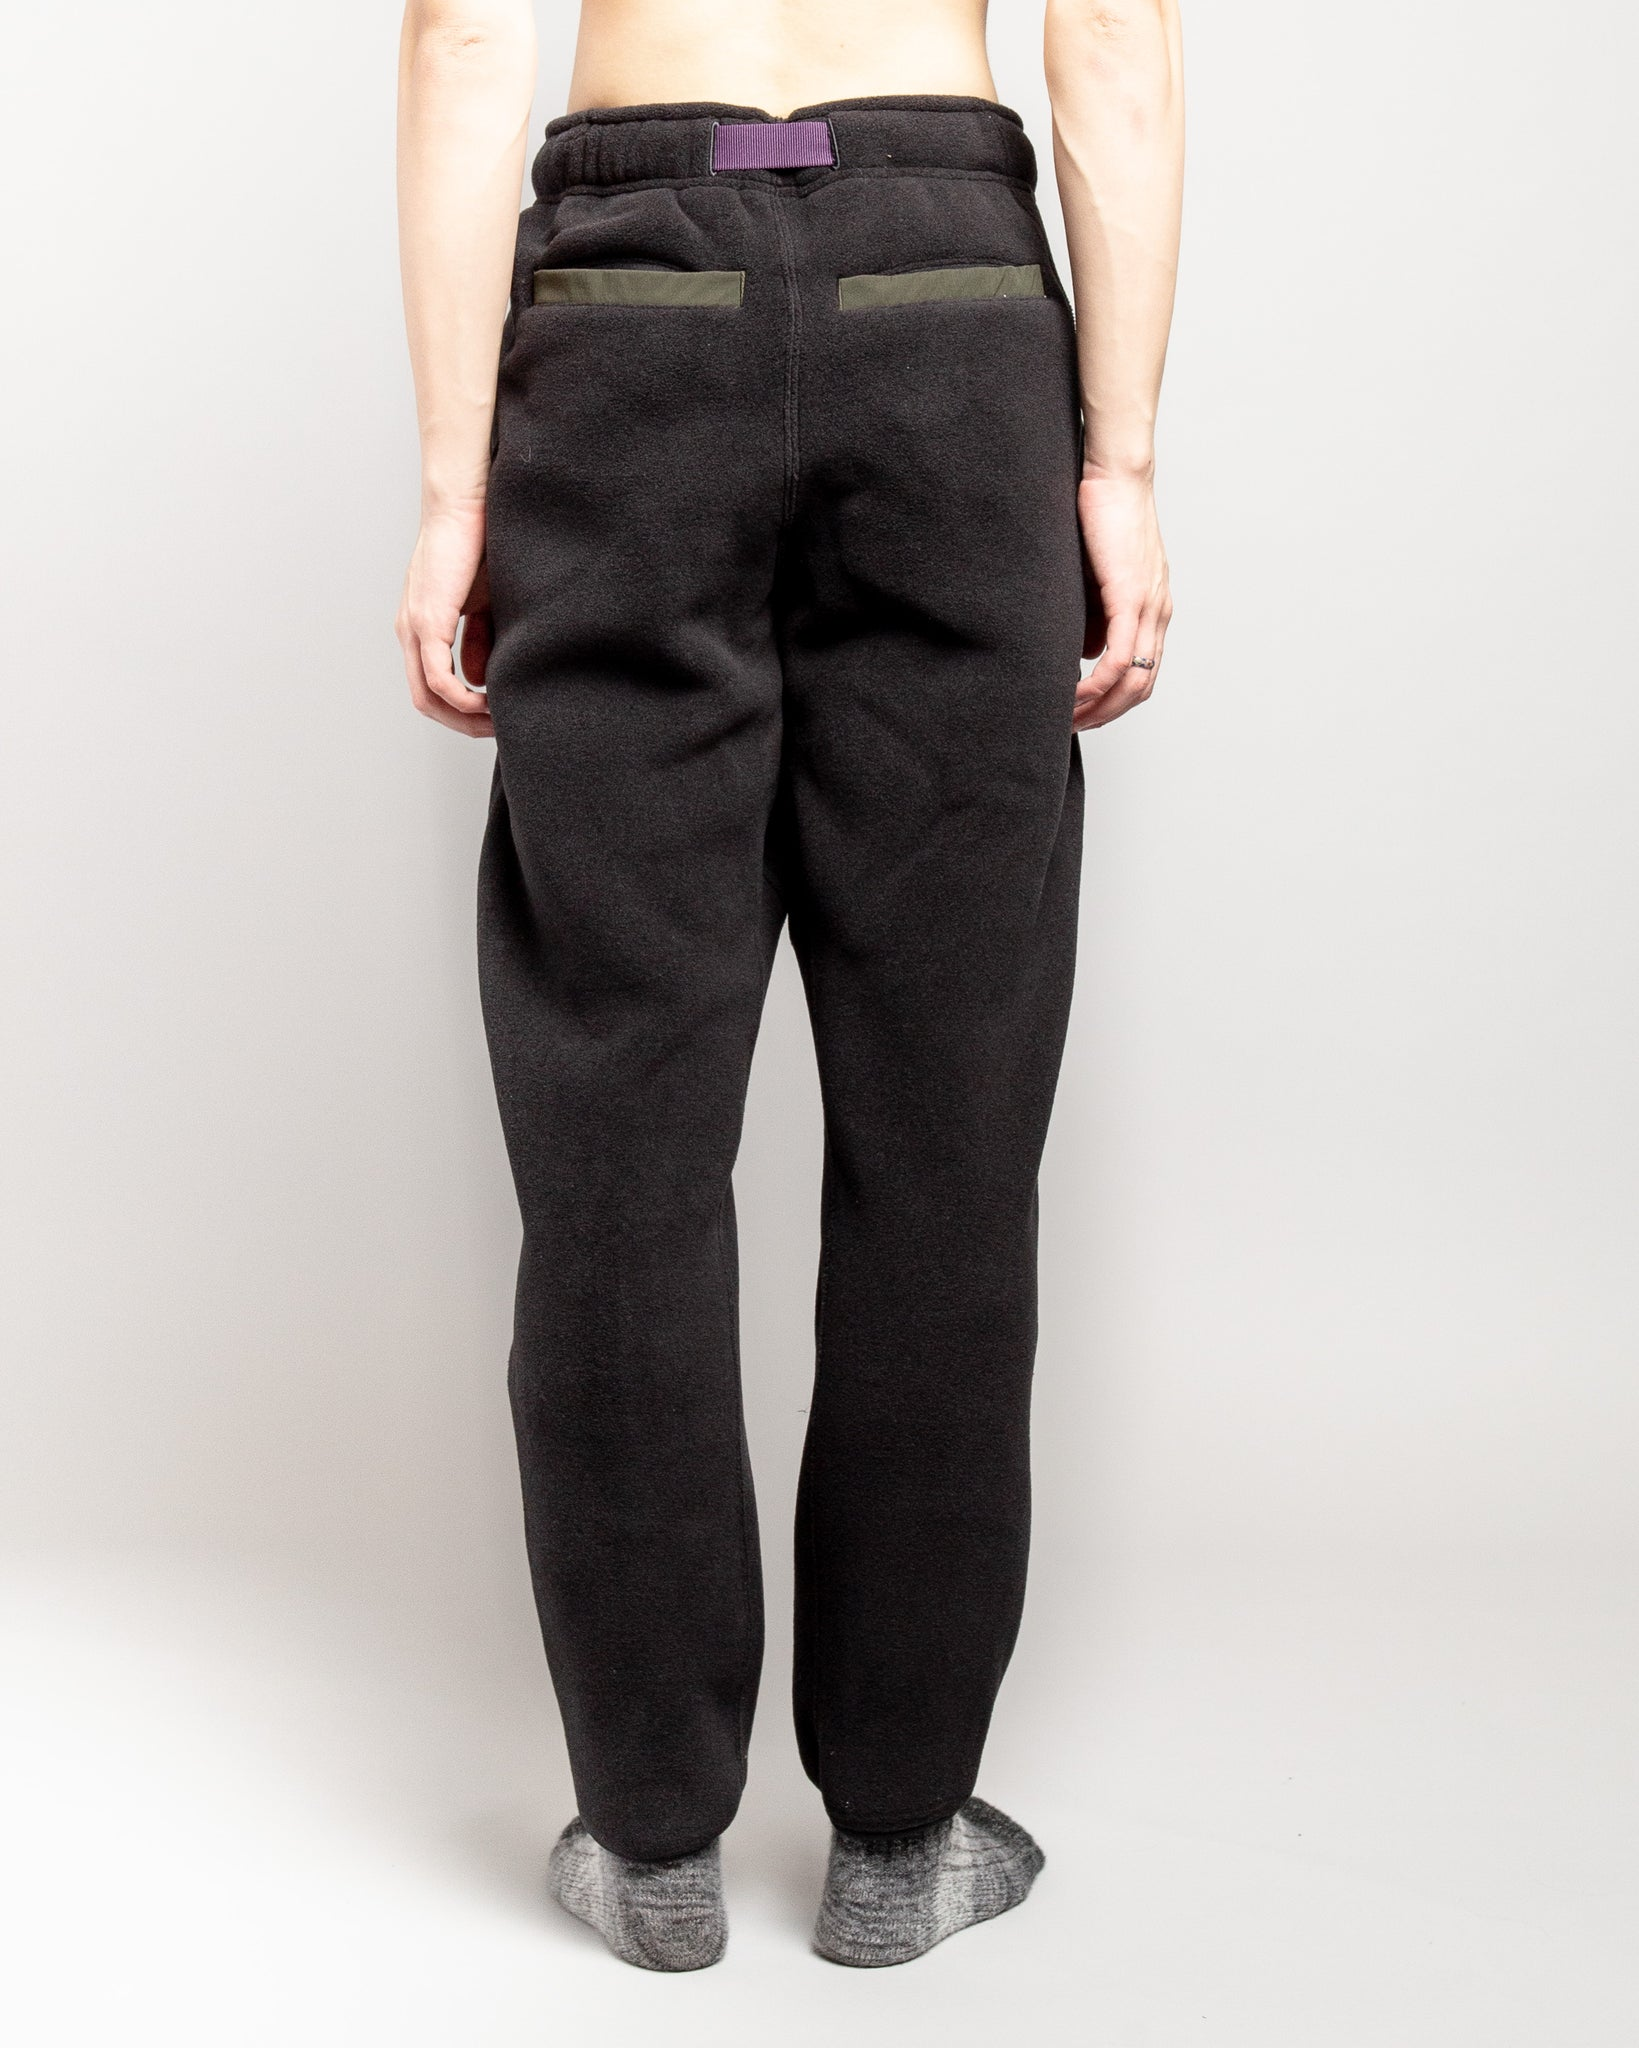 ACG Sherpa Fleece Pants Black/Black